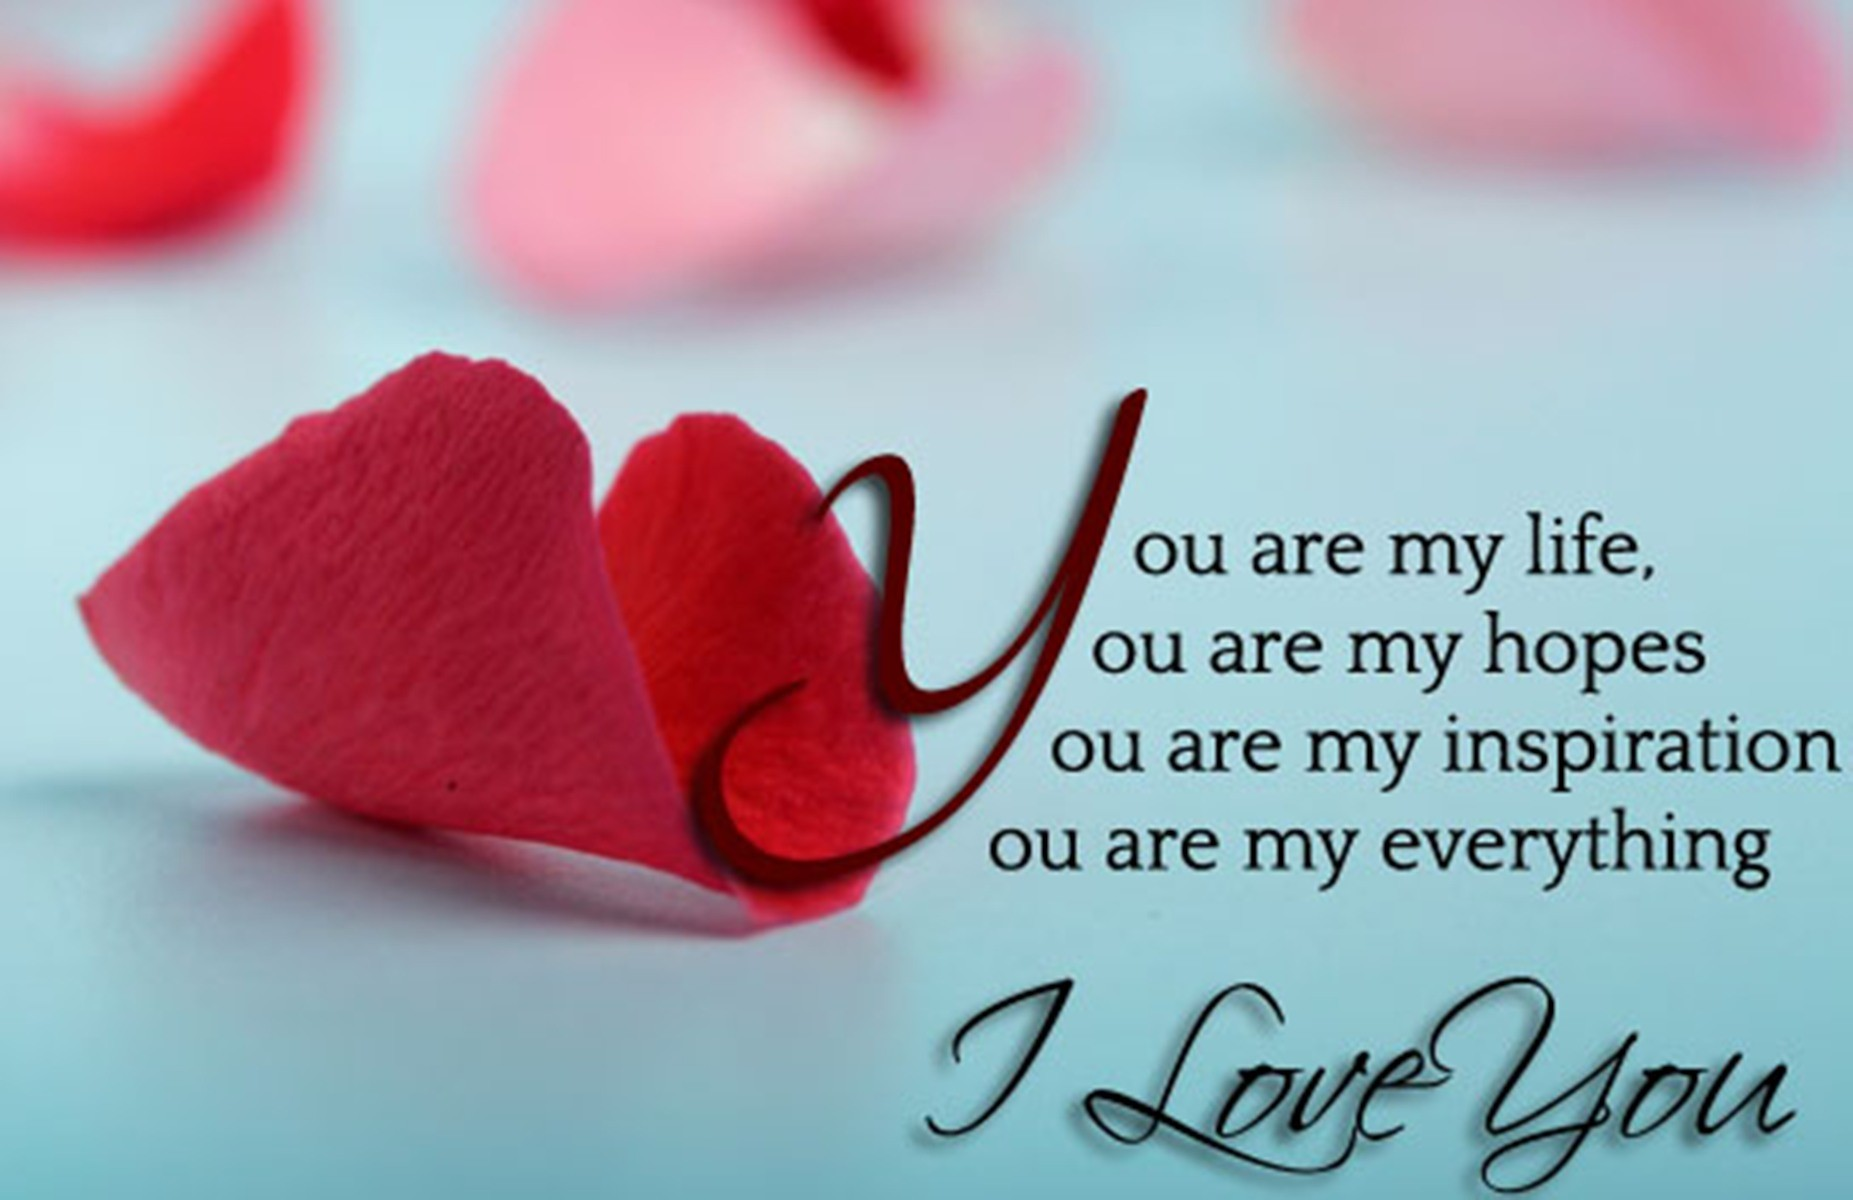 Heart Touching Love Quotes For My Girlfriend Heart Touching Love Quotes Hd Wallpapers Live Love Quotes